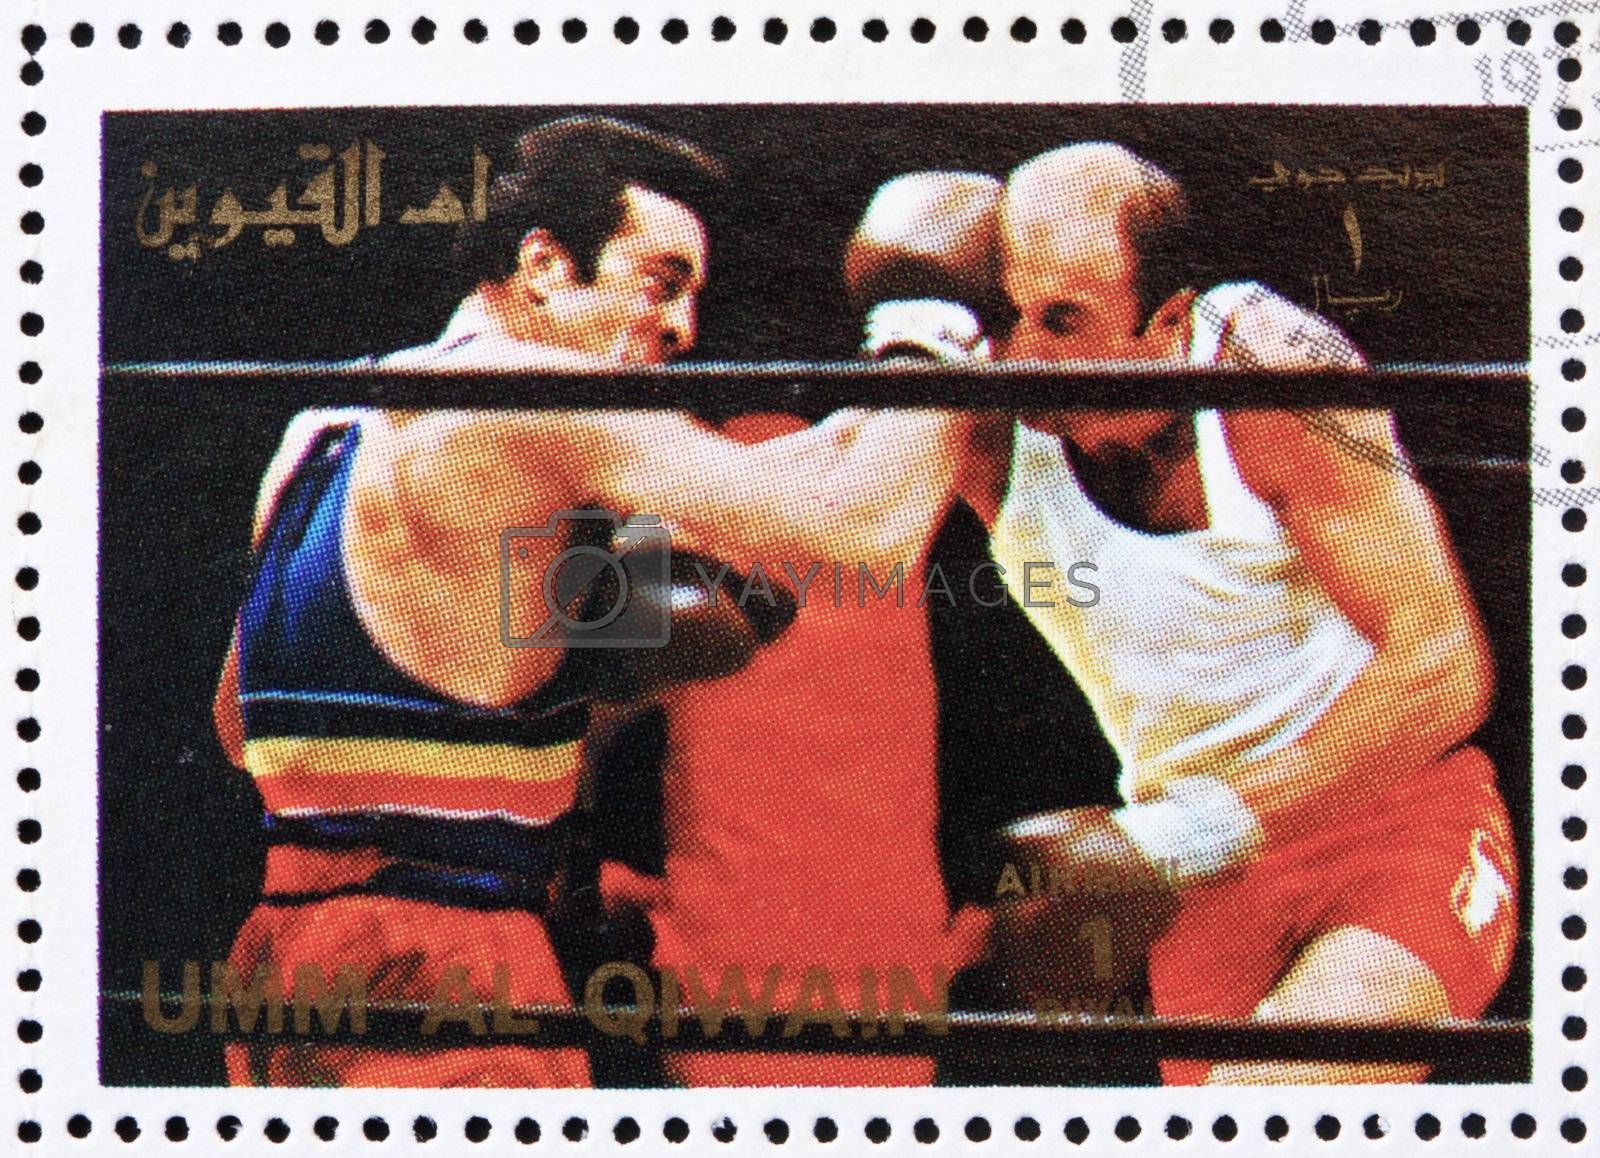 UMM AL-QUWAIN - CIRCA 1972: a stamp printed in the Umm al-Quwain shows Boxing, Olympic Sport, Olympic Games of the past, circa 1972